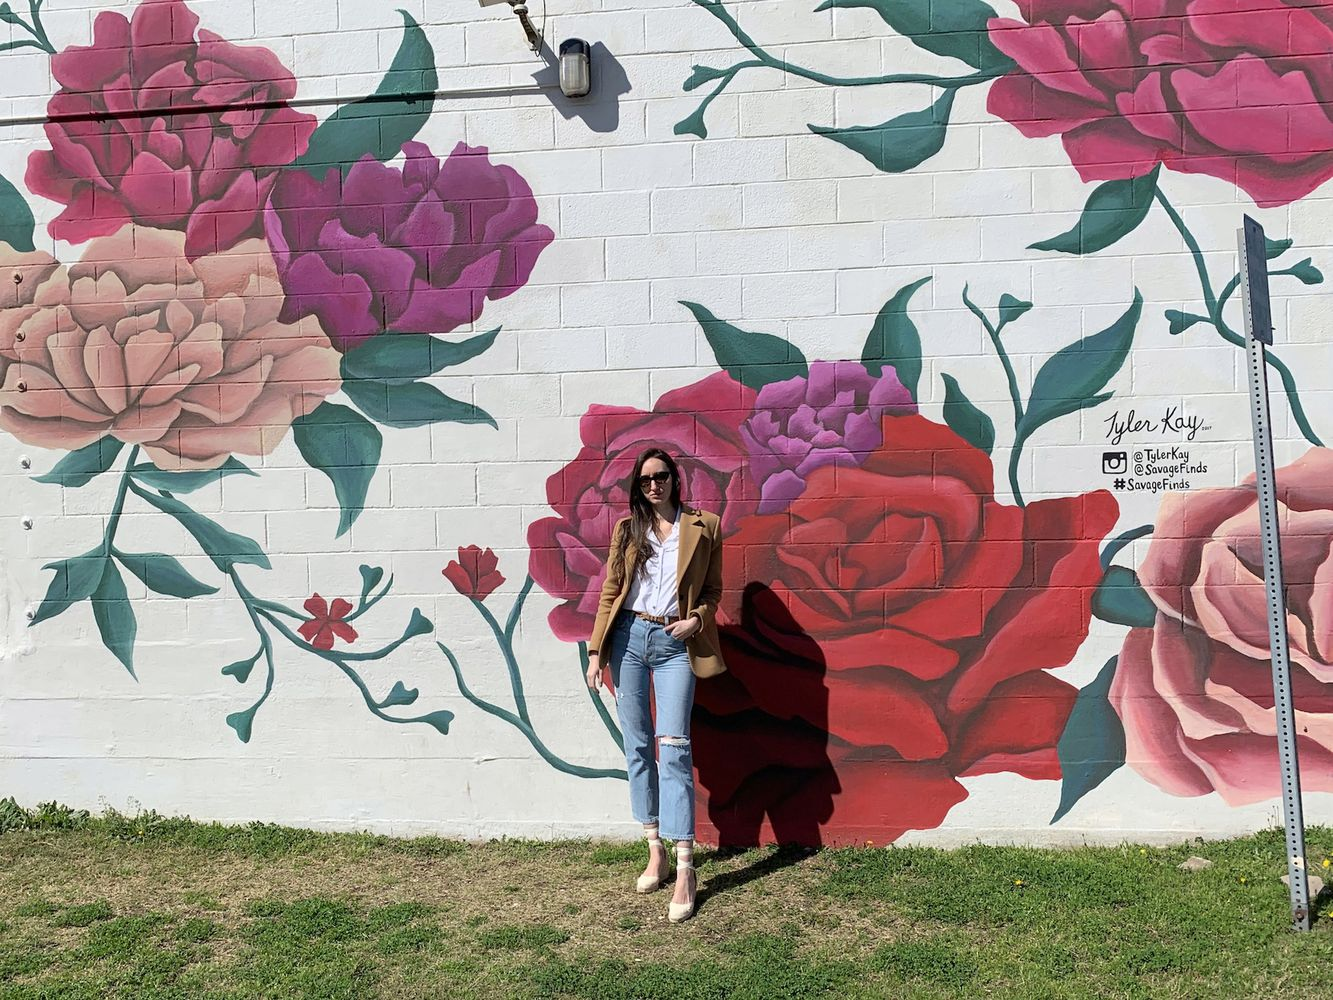 Savage Finds Rose Wall Mural in Waco, Texas - Waco City Guide